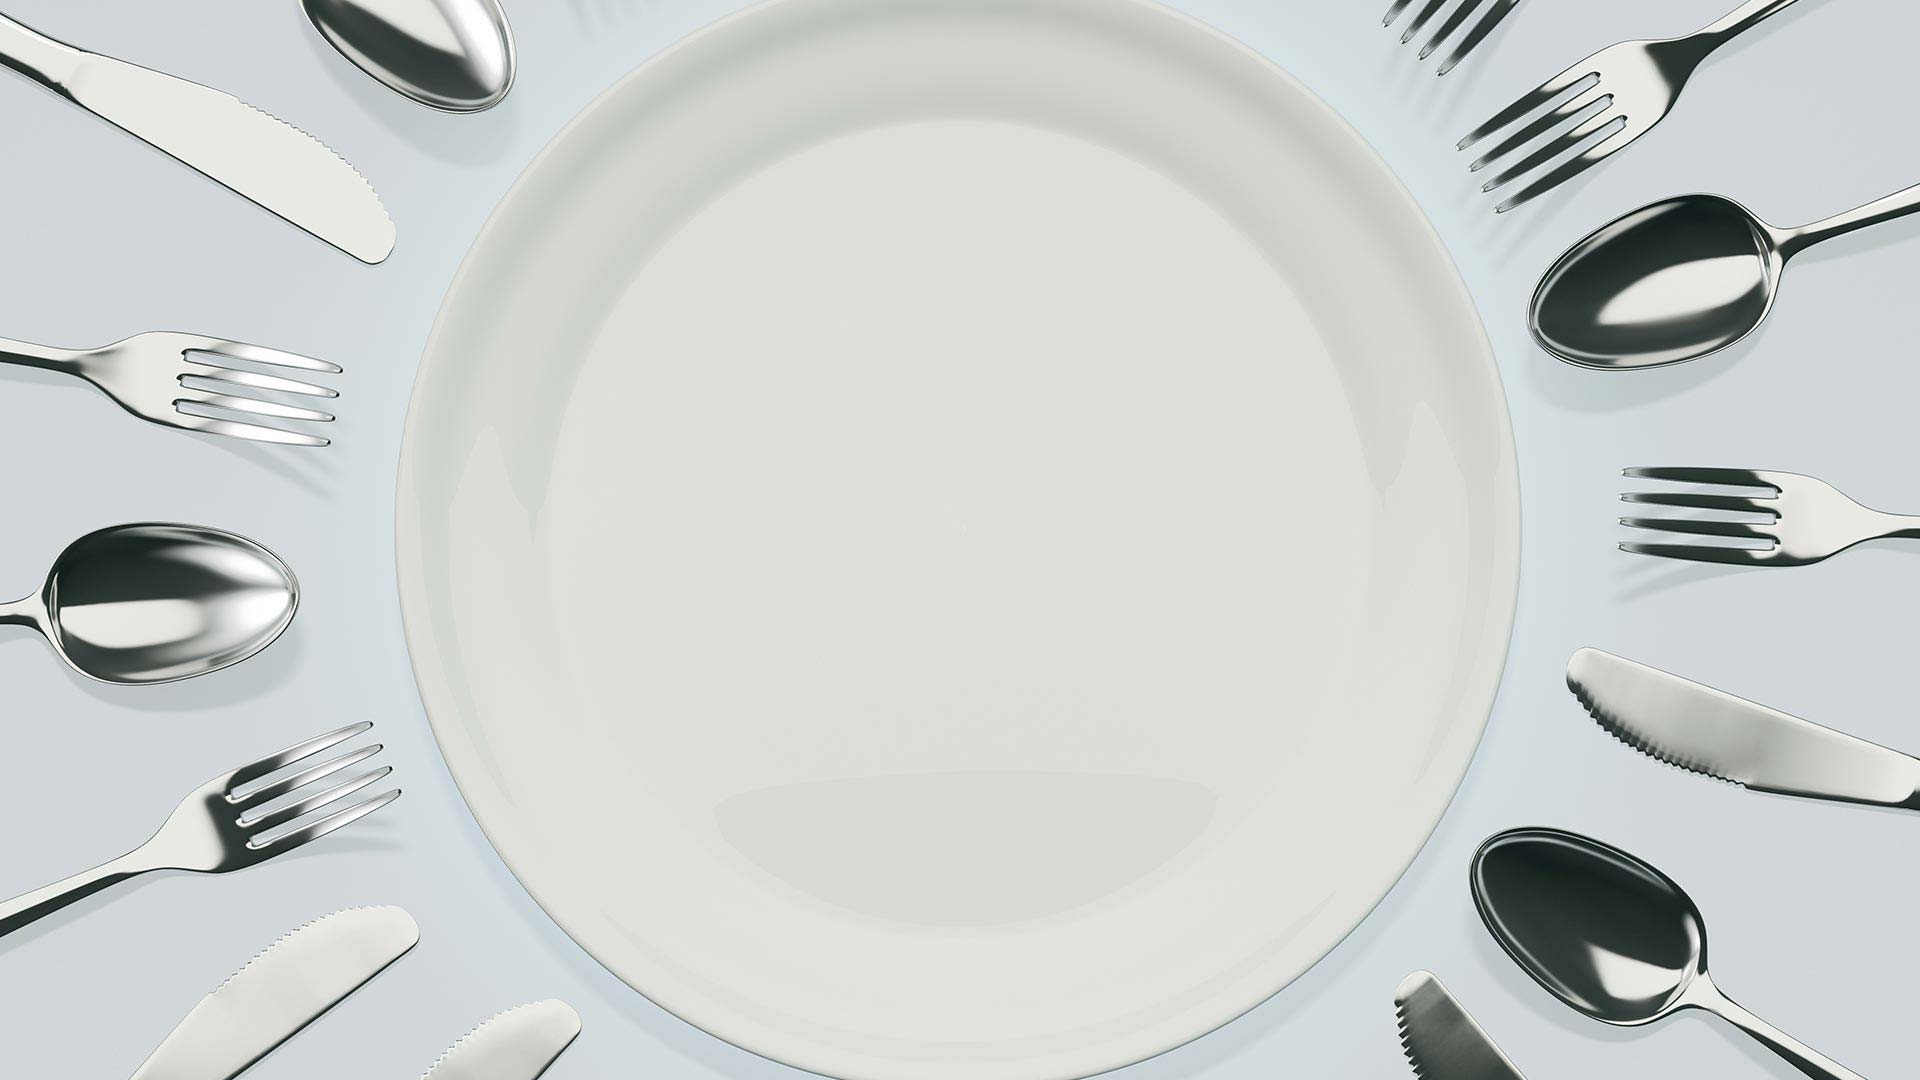 plate with silverware